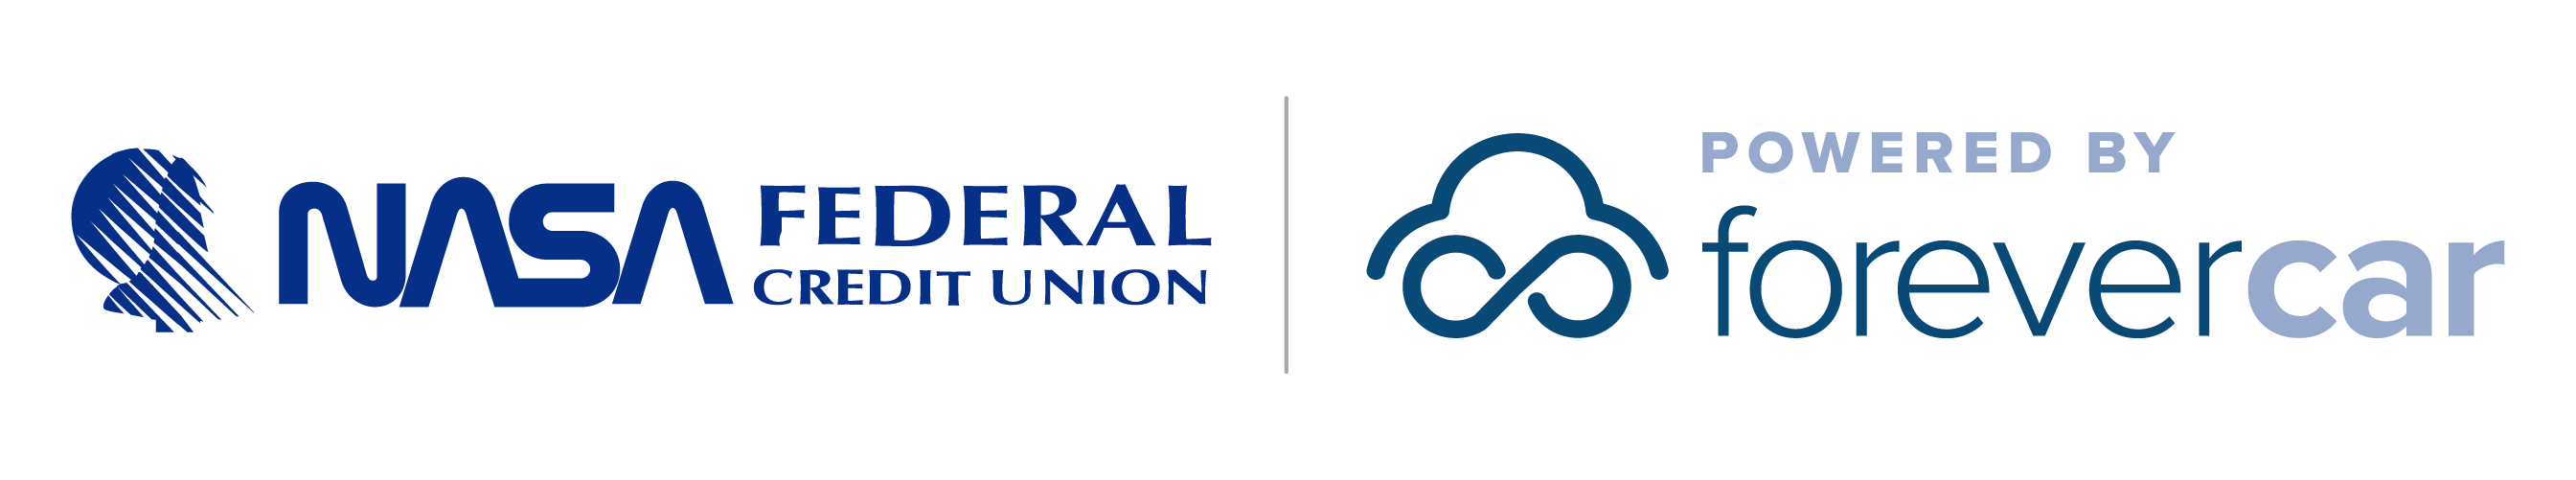 NASA Federal Credit Union Powered by ForeverCar Logo